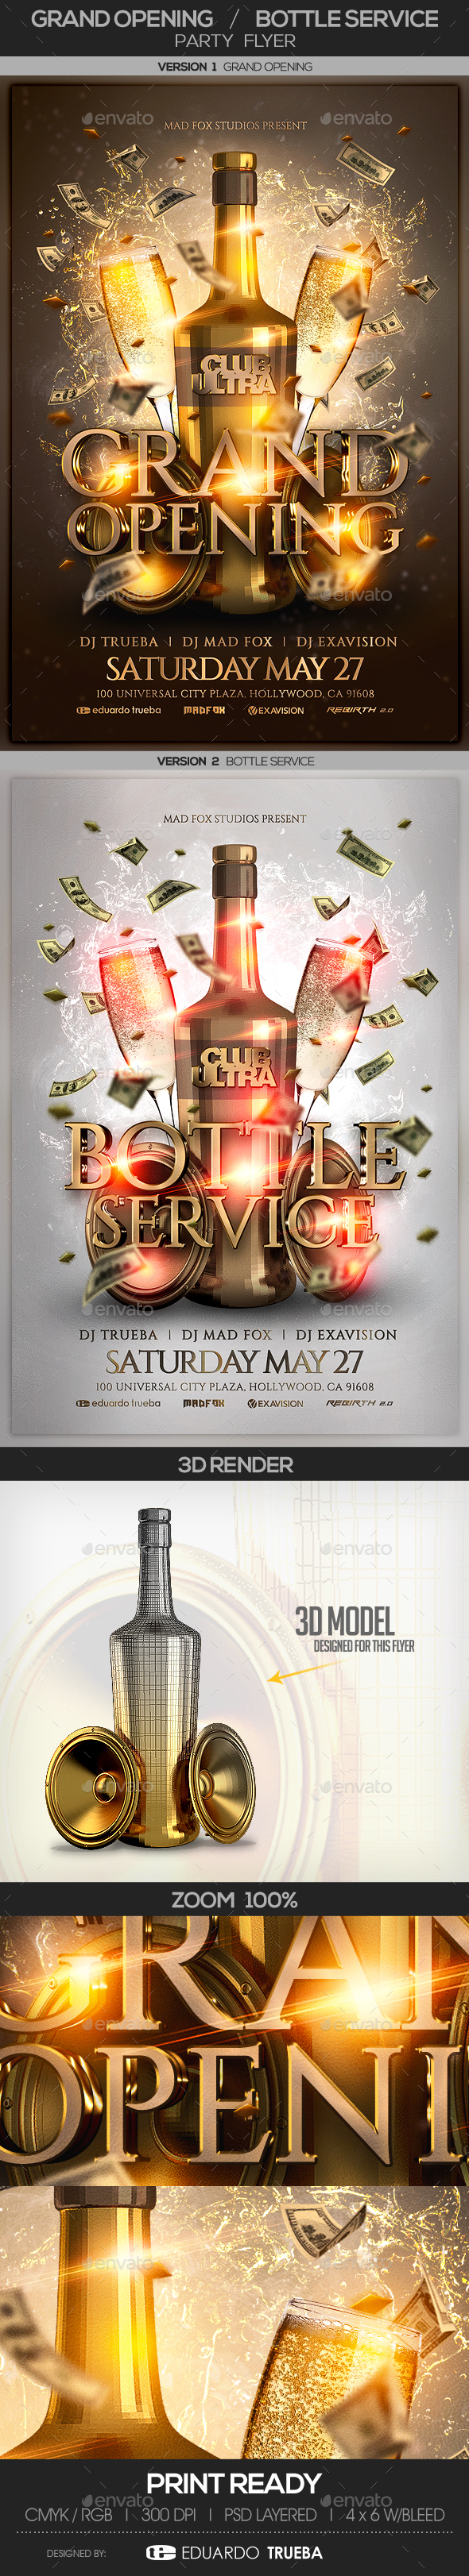 Grand Opening & Bottle Service Party Flyer - Clubs & Parties Events